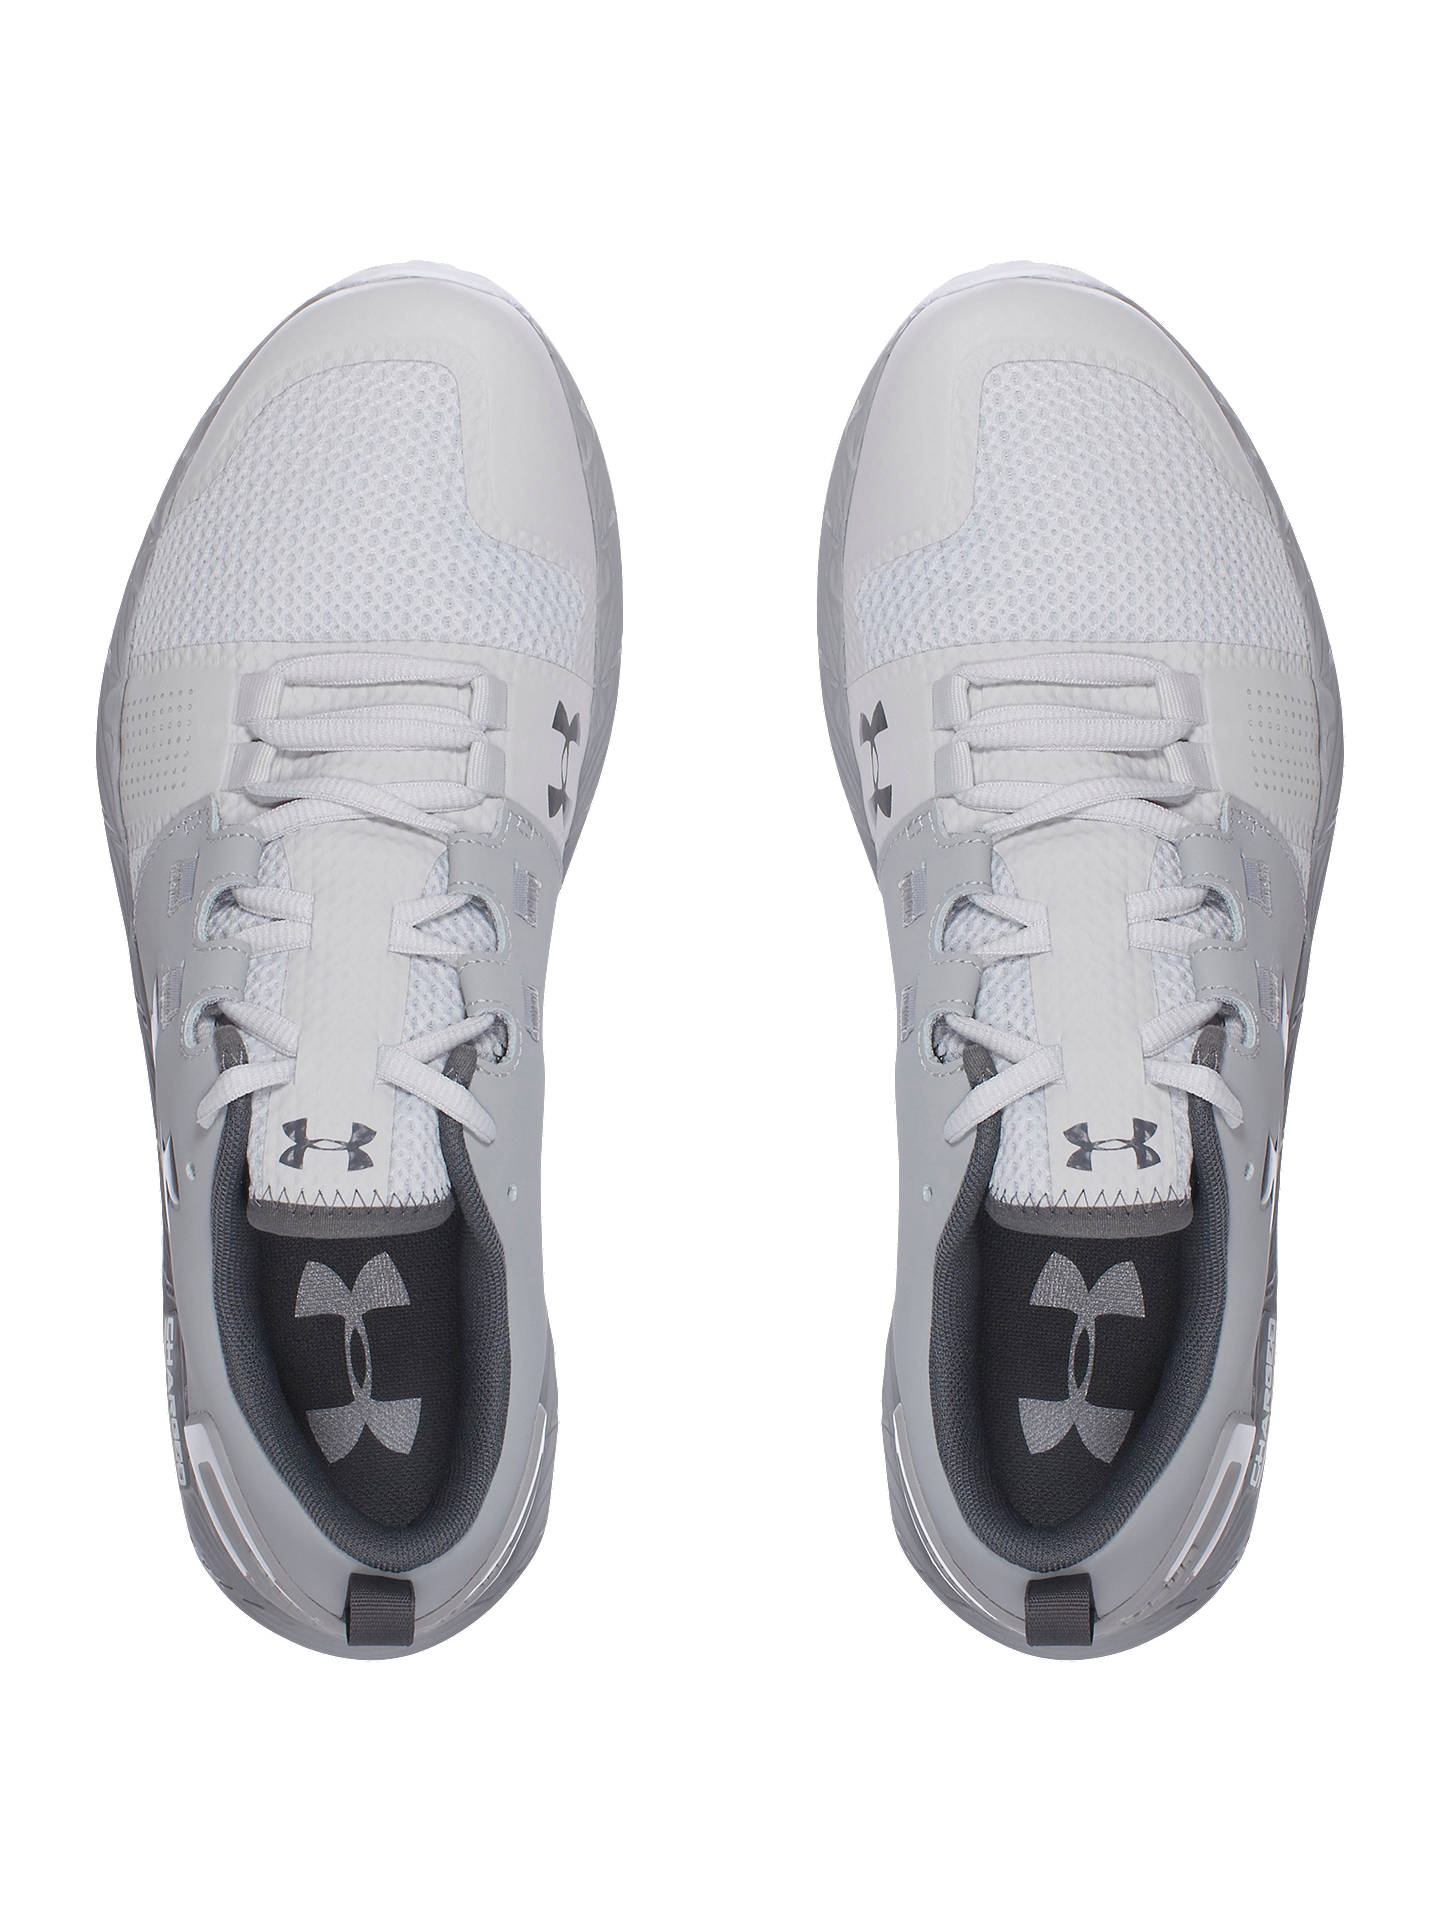 the best attitude 8763f b5659 Under Armour Commit Men's Training Shoes at John Lewis ...